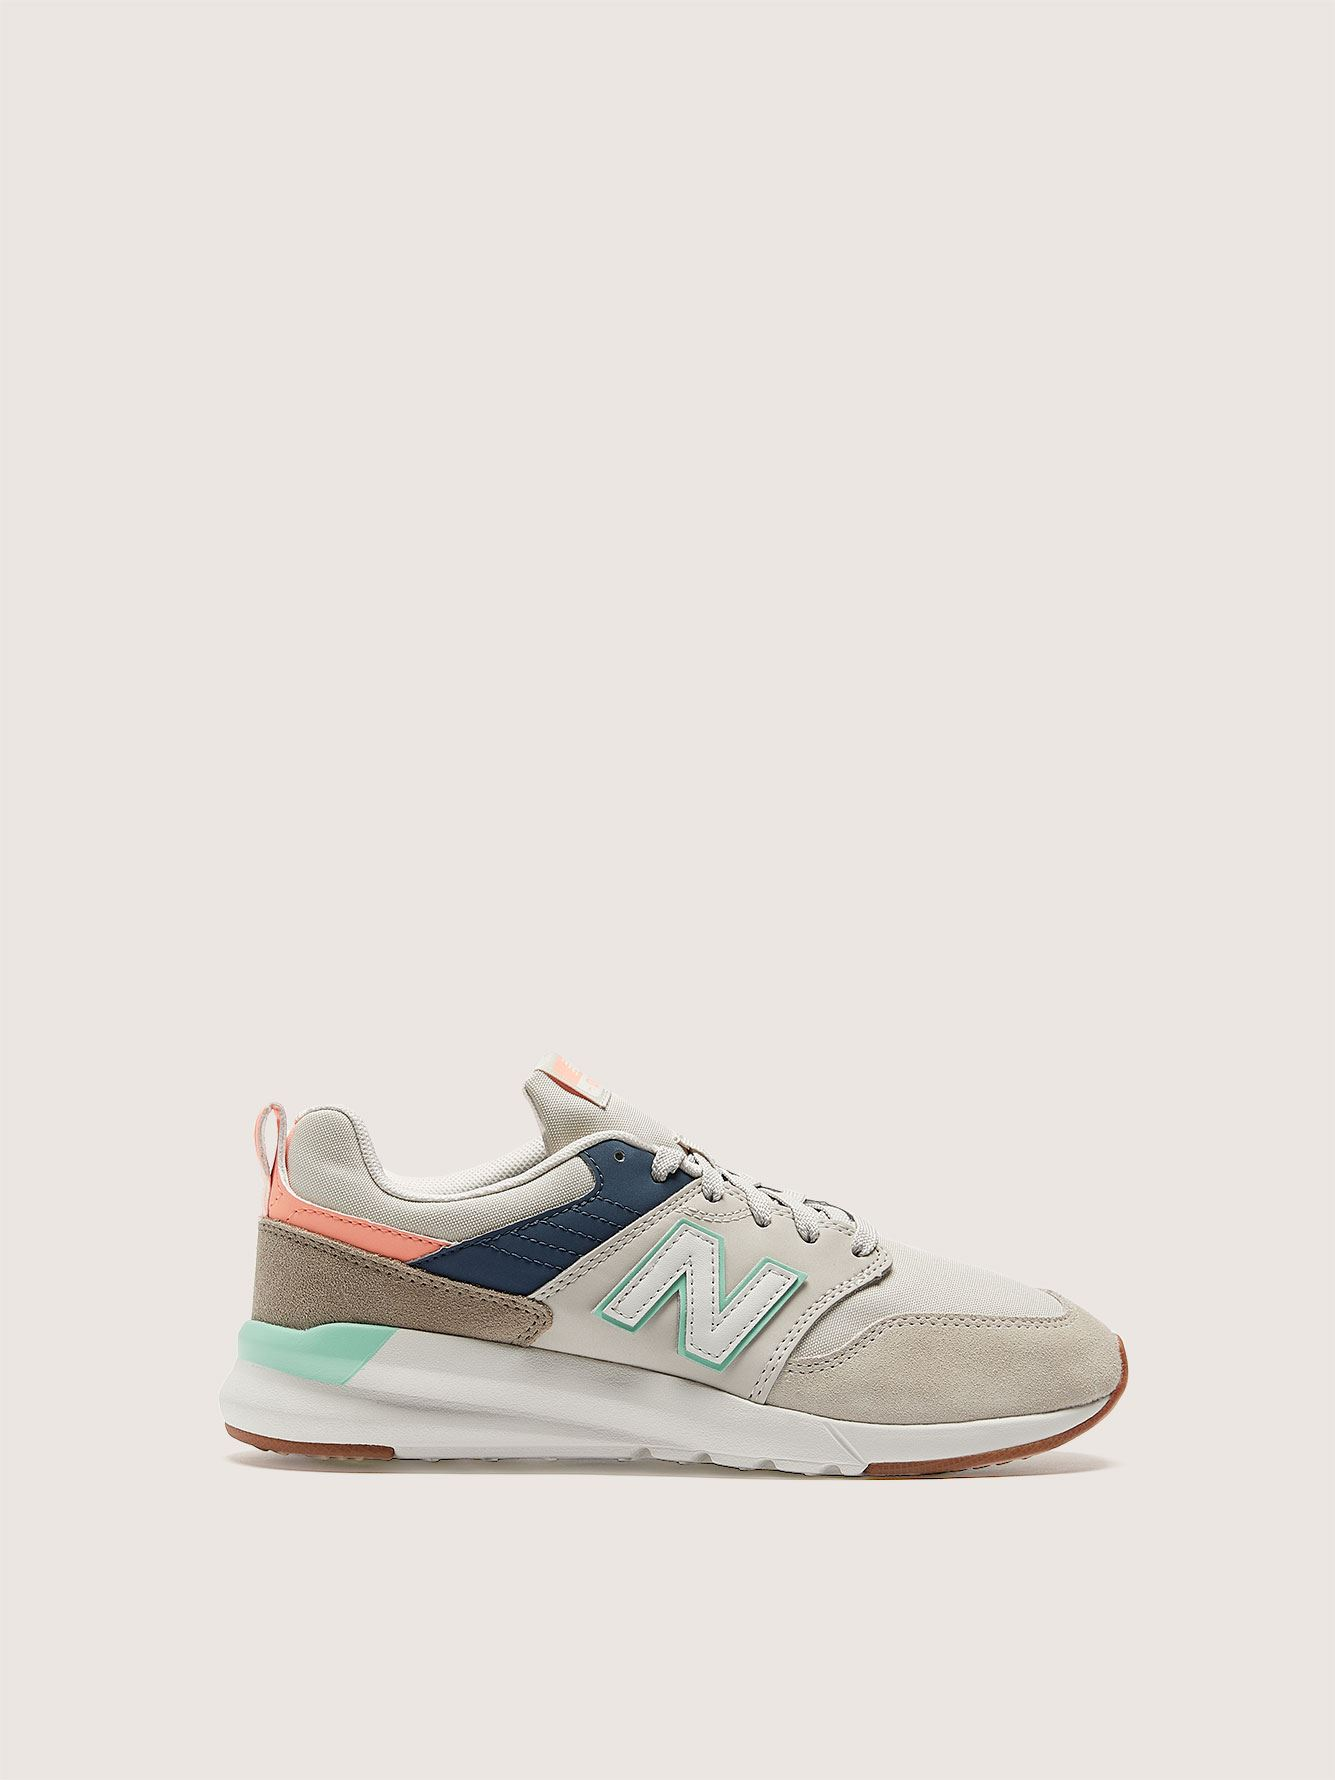 Chaussure sport style rétro, pied large - New Balance